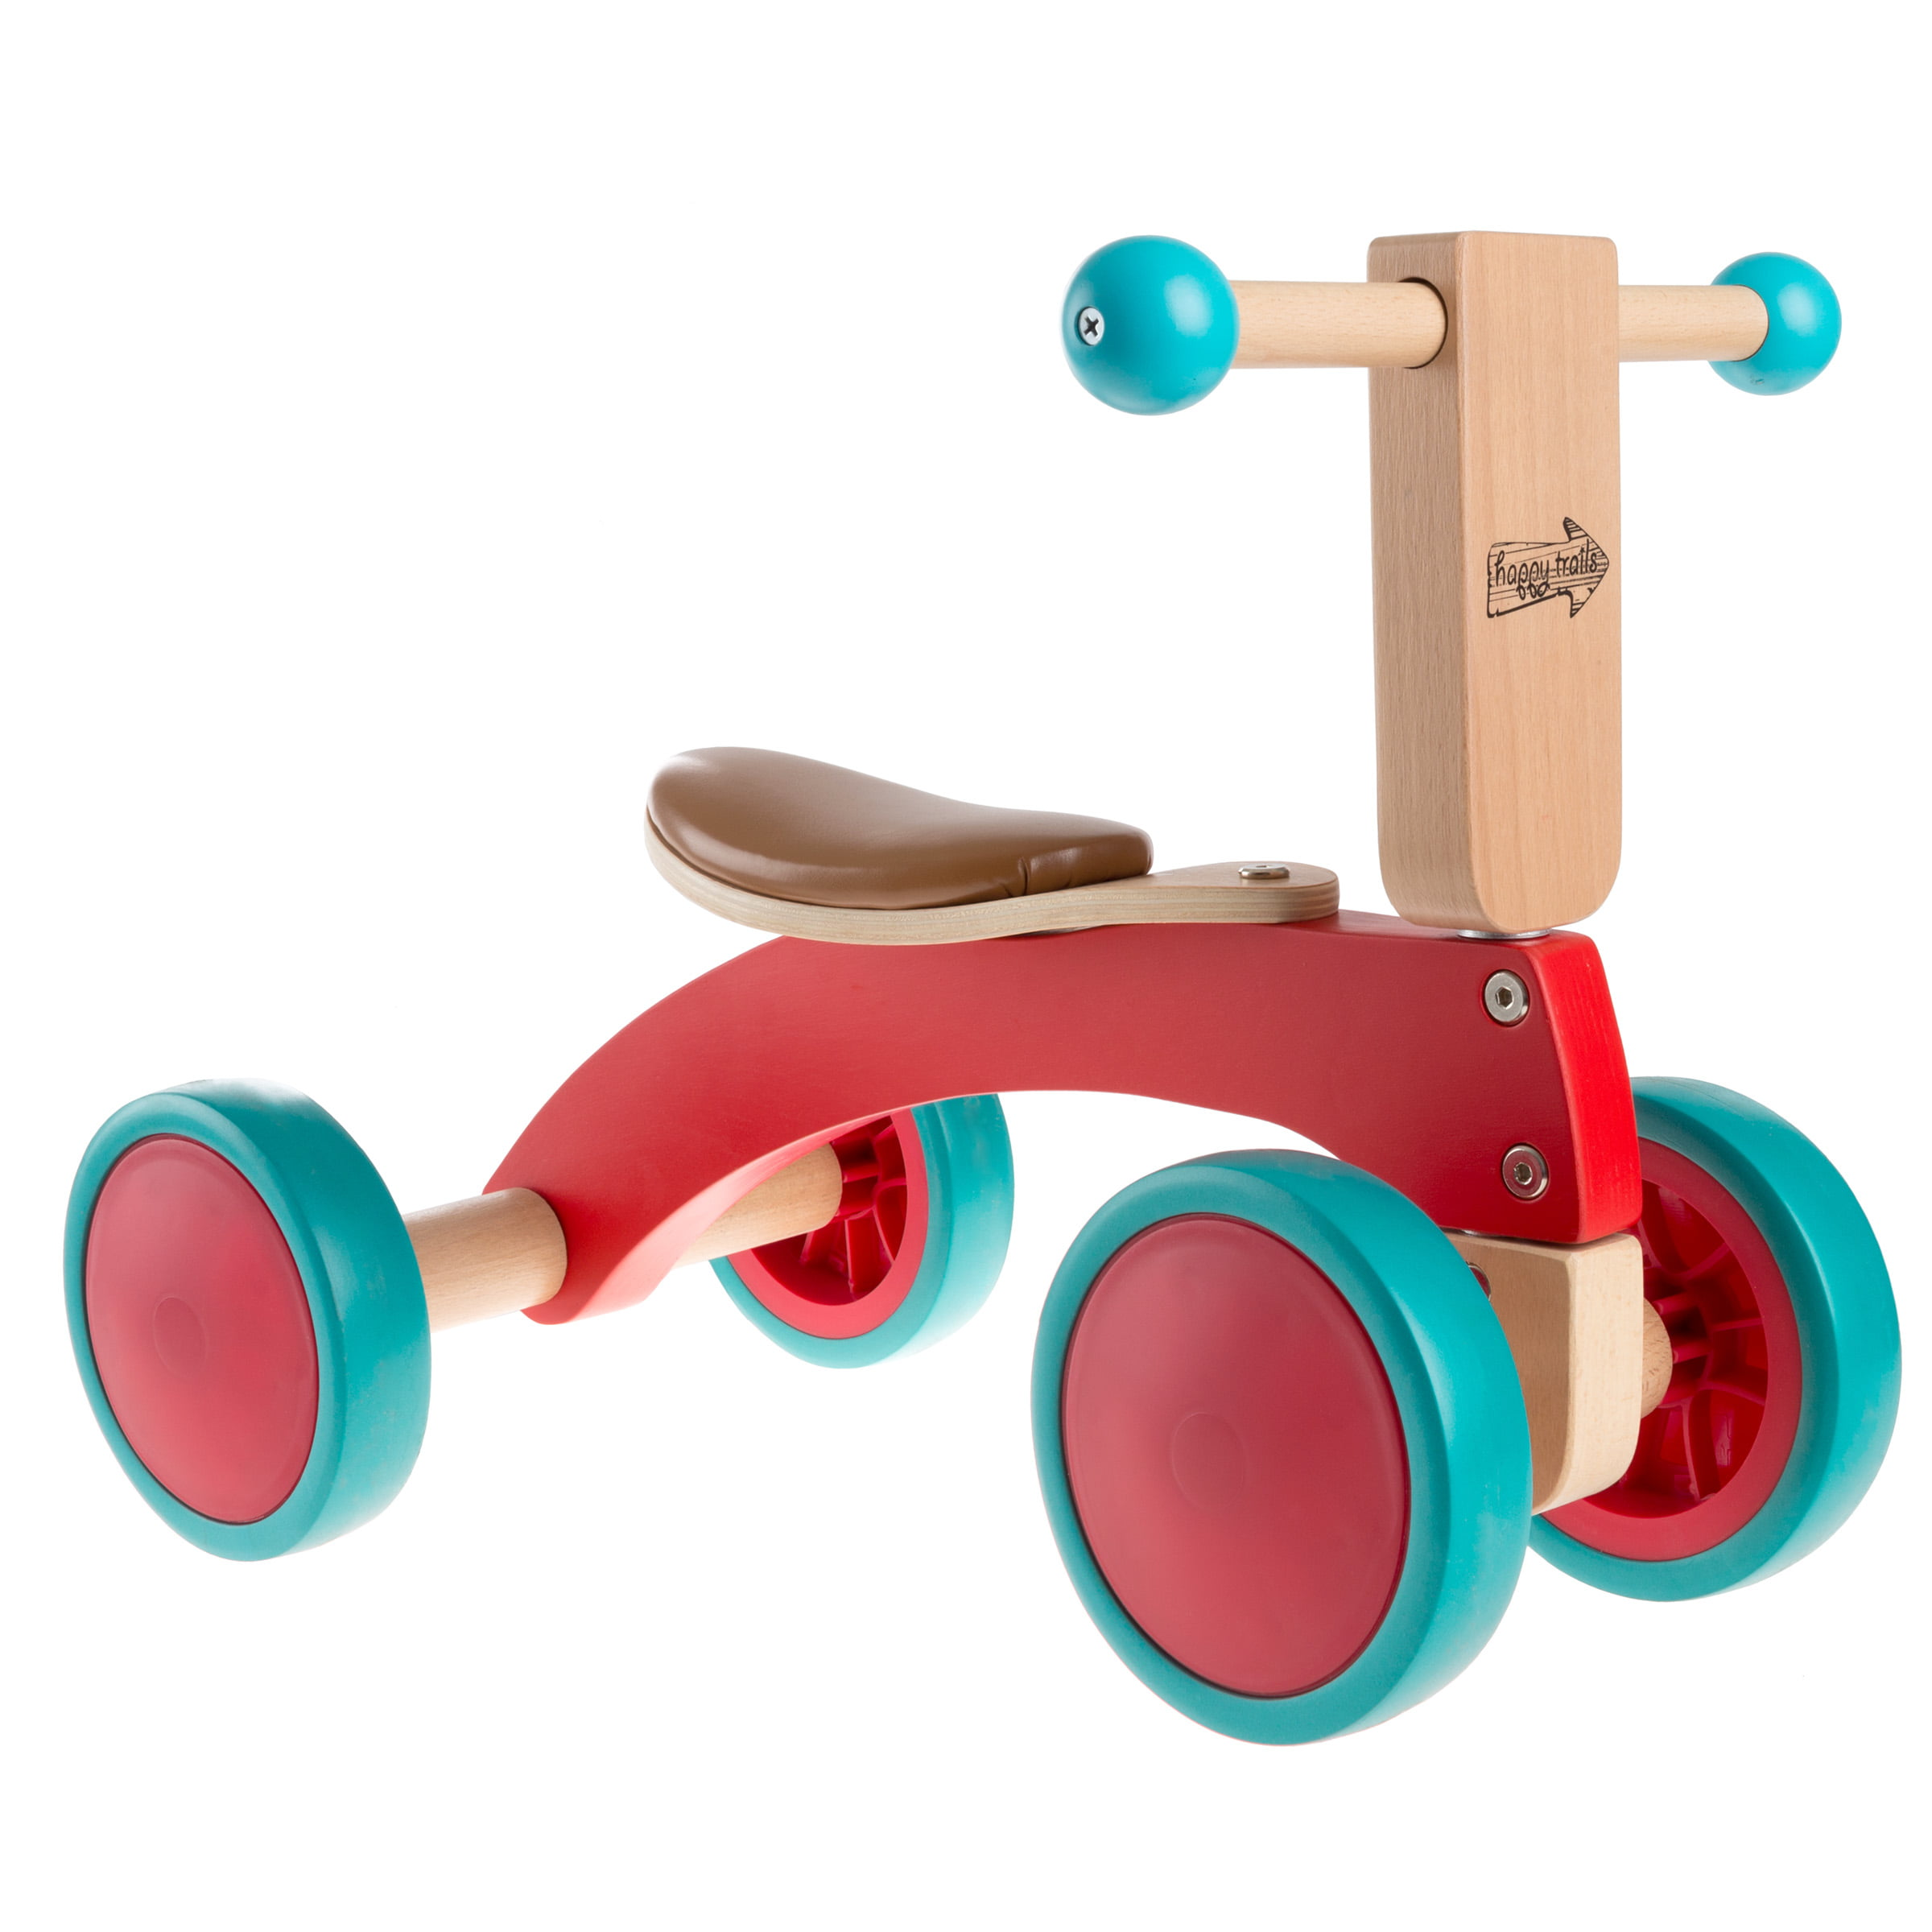 walk and ride wooden balance bike for toddlers 1-2 years old- ride, push,  or pull toy- perfect for boys and girlshappy trails